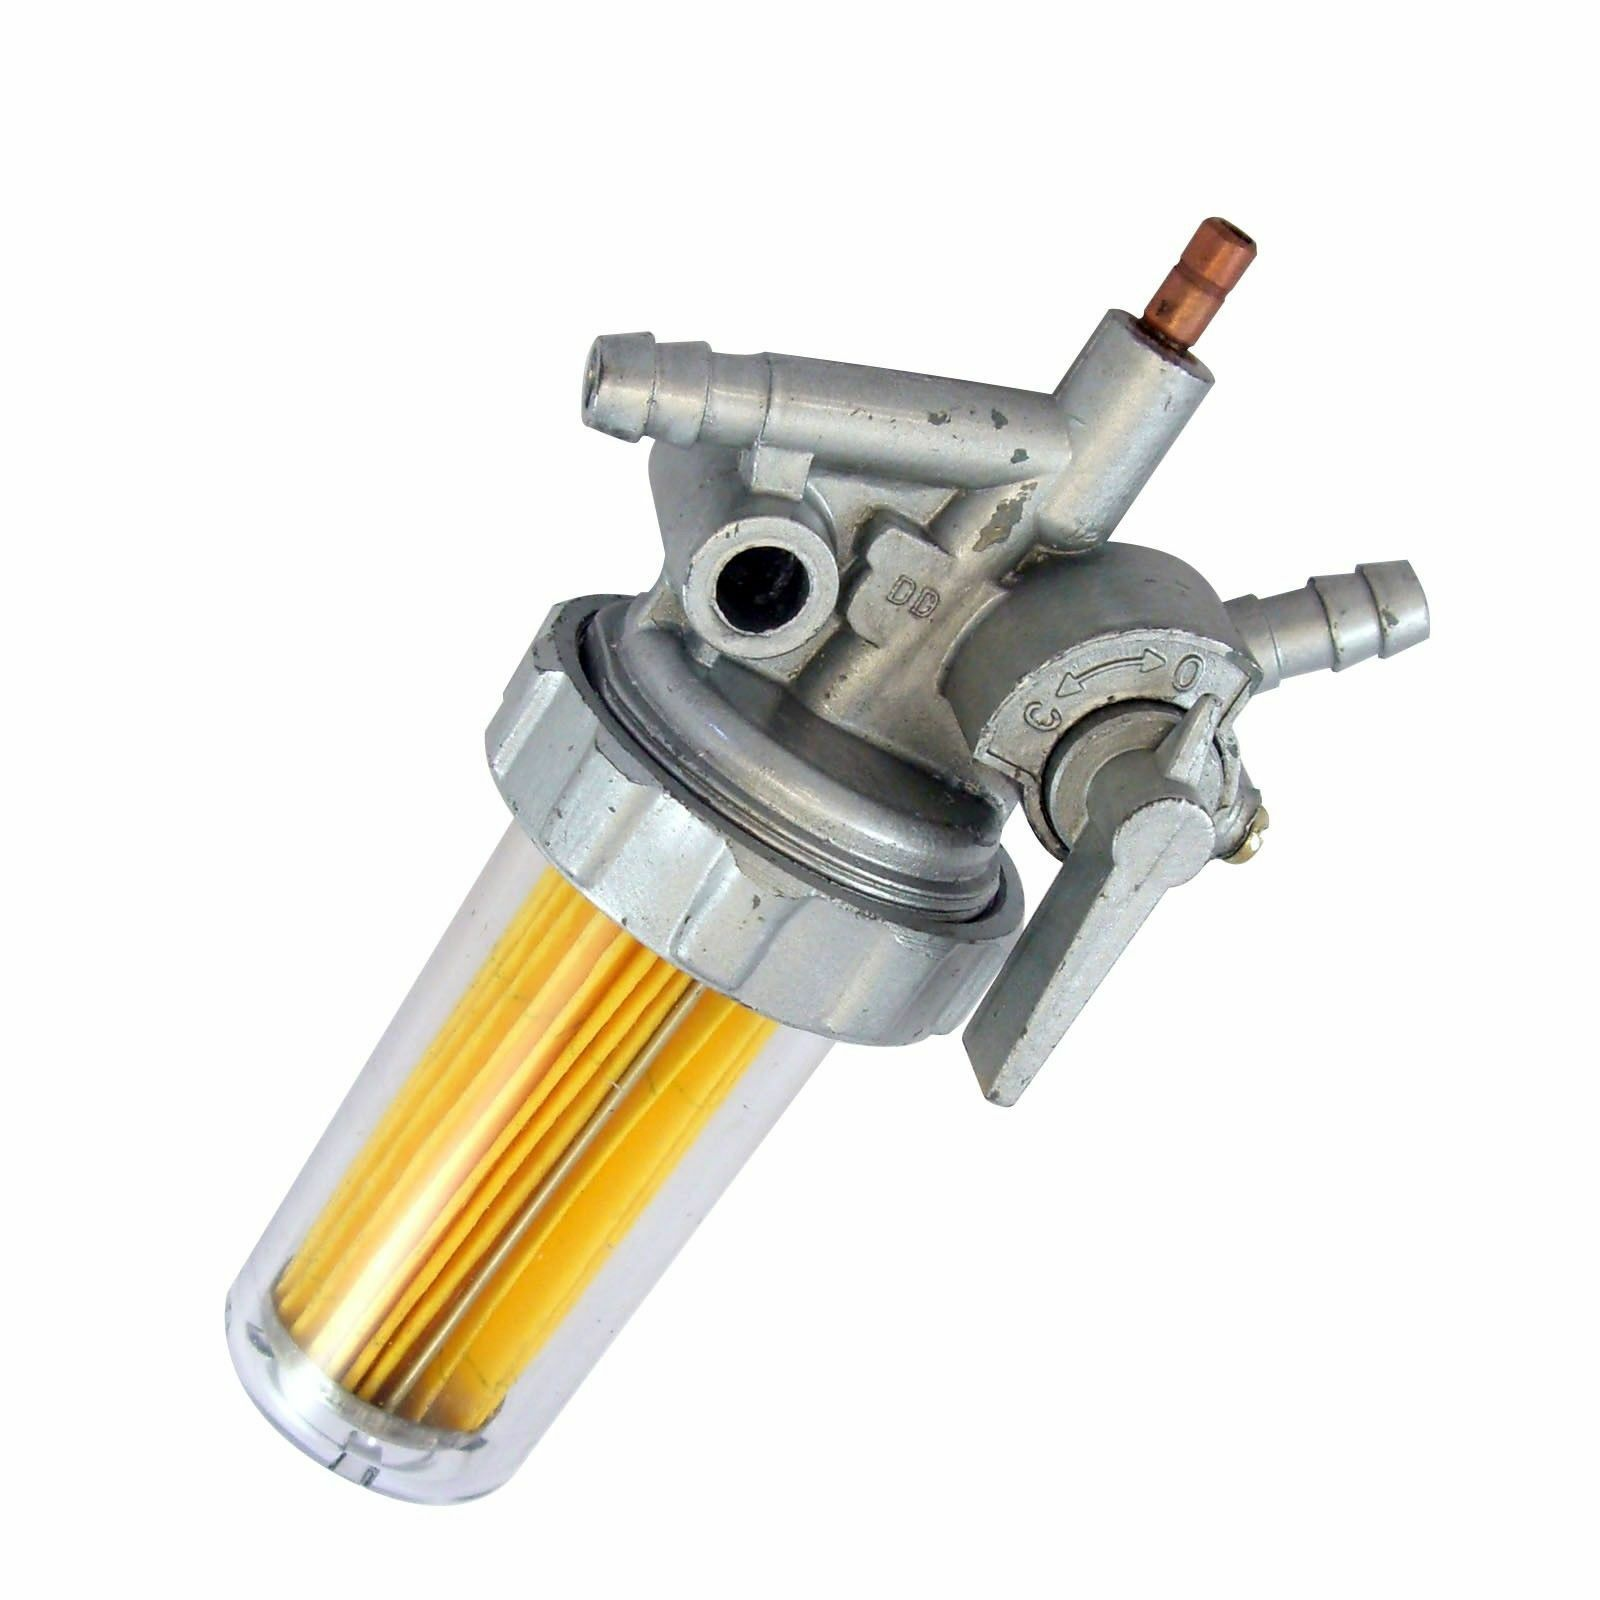 External Diesel Fuel Filter Assembly ETQ DG6LN DG5500 DG7250LE DWG6LE  Generator 1 of 1 See More